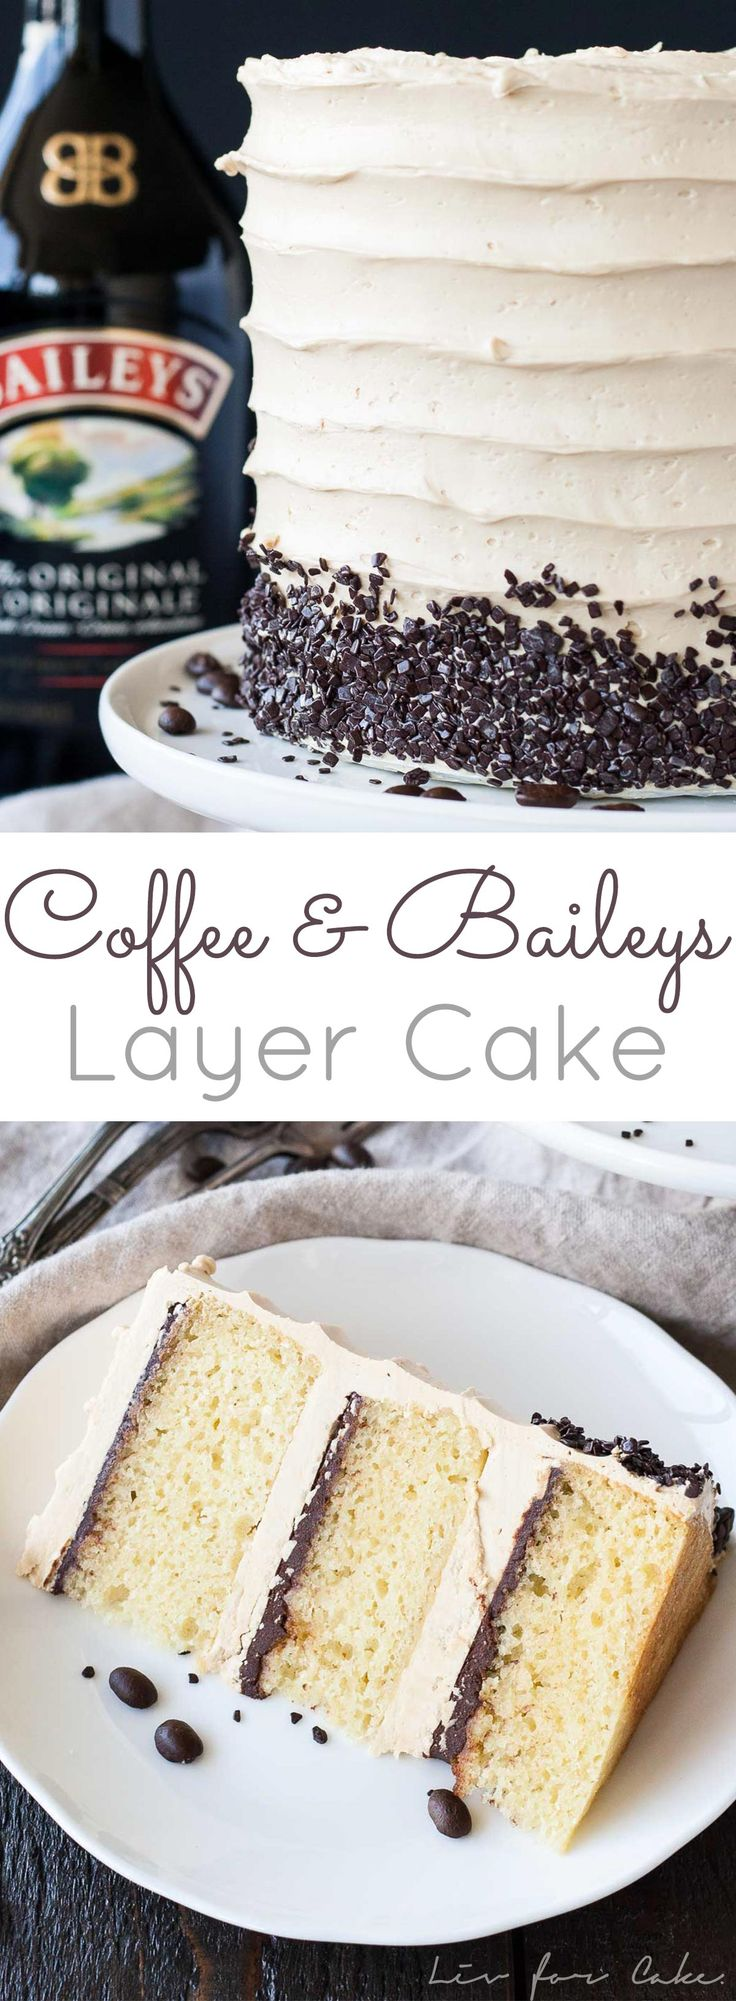 The perfect pairing of coffee and Baileys in this delicious layer cake. A vanilla buttermilk cake layered with chocolate ganache and a coffee baileys swiss meringue buttercream. | livforcake.com via @livforcake